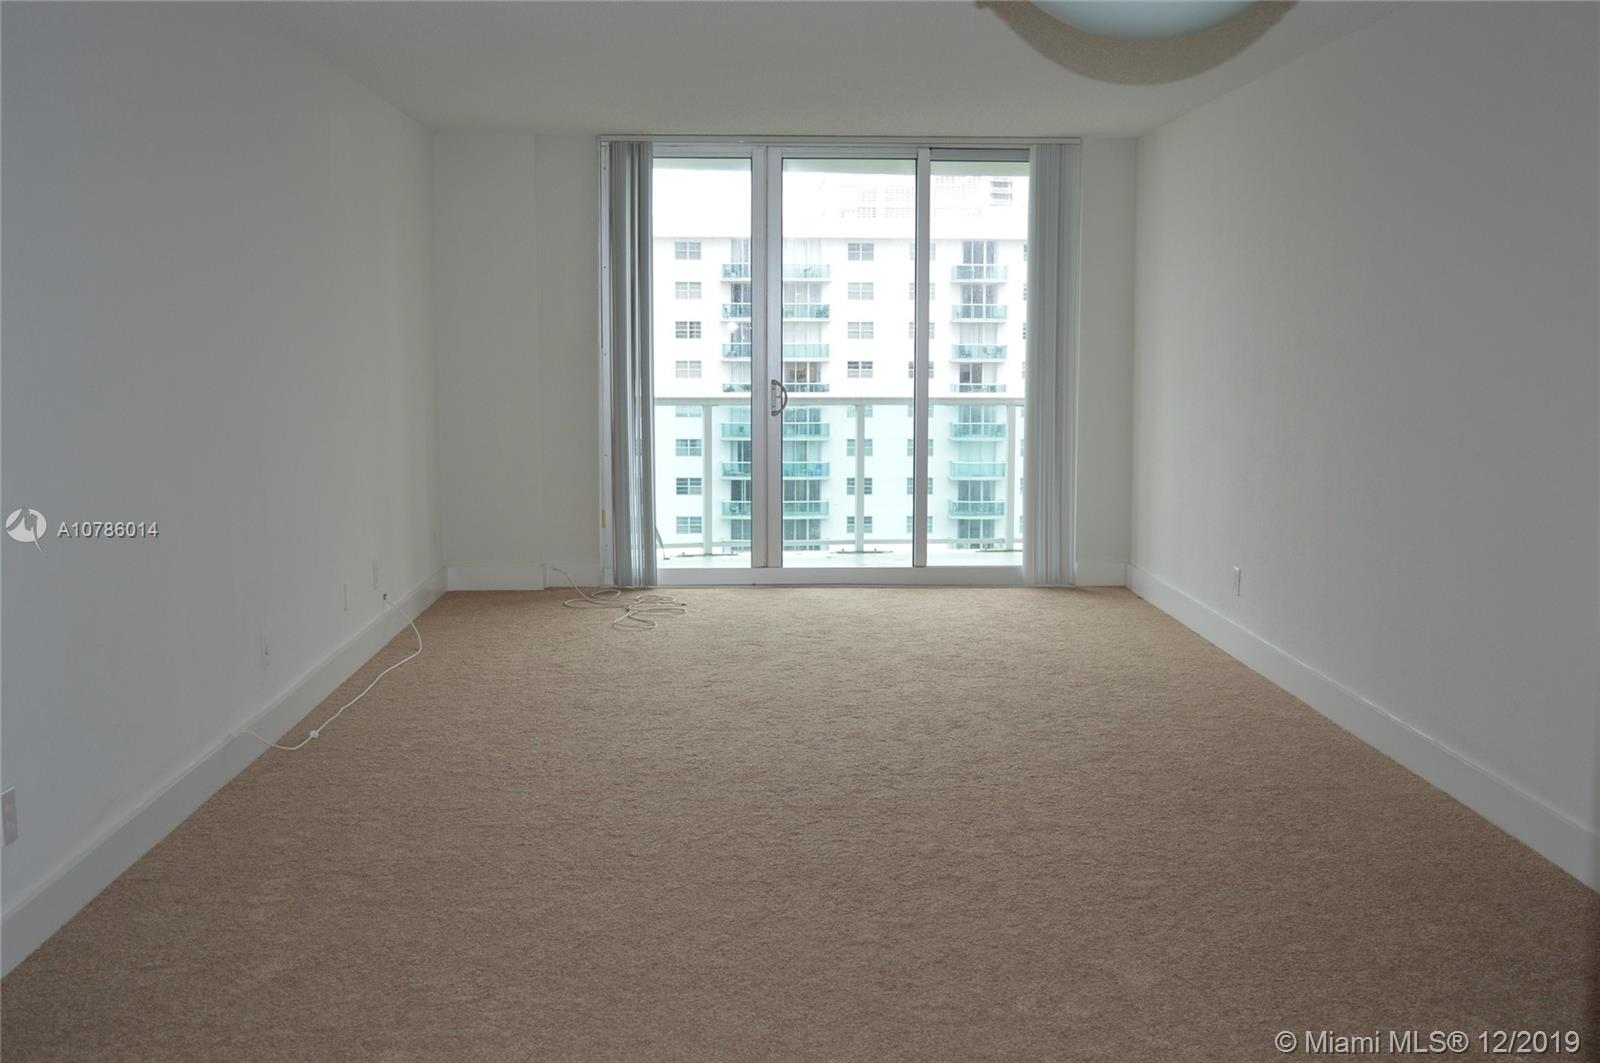 19370 Collins Ave # 1510, Sunny Isles Beach, Florida 33160, 1 Bedroom Bedrooms, ,2 BathroomsBathrooms,Residential Lease,For Rent,19370 Collins Ave # 1510,A10786014